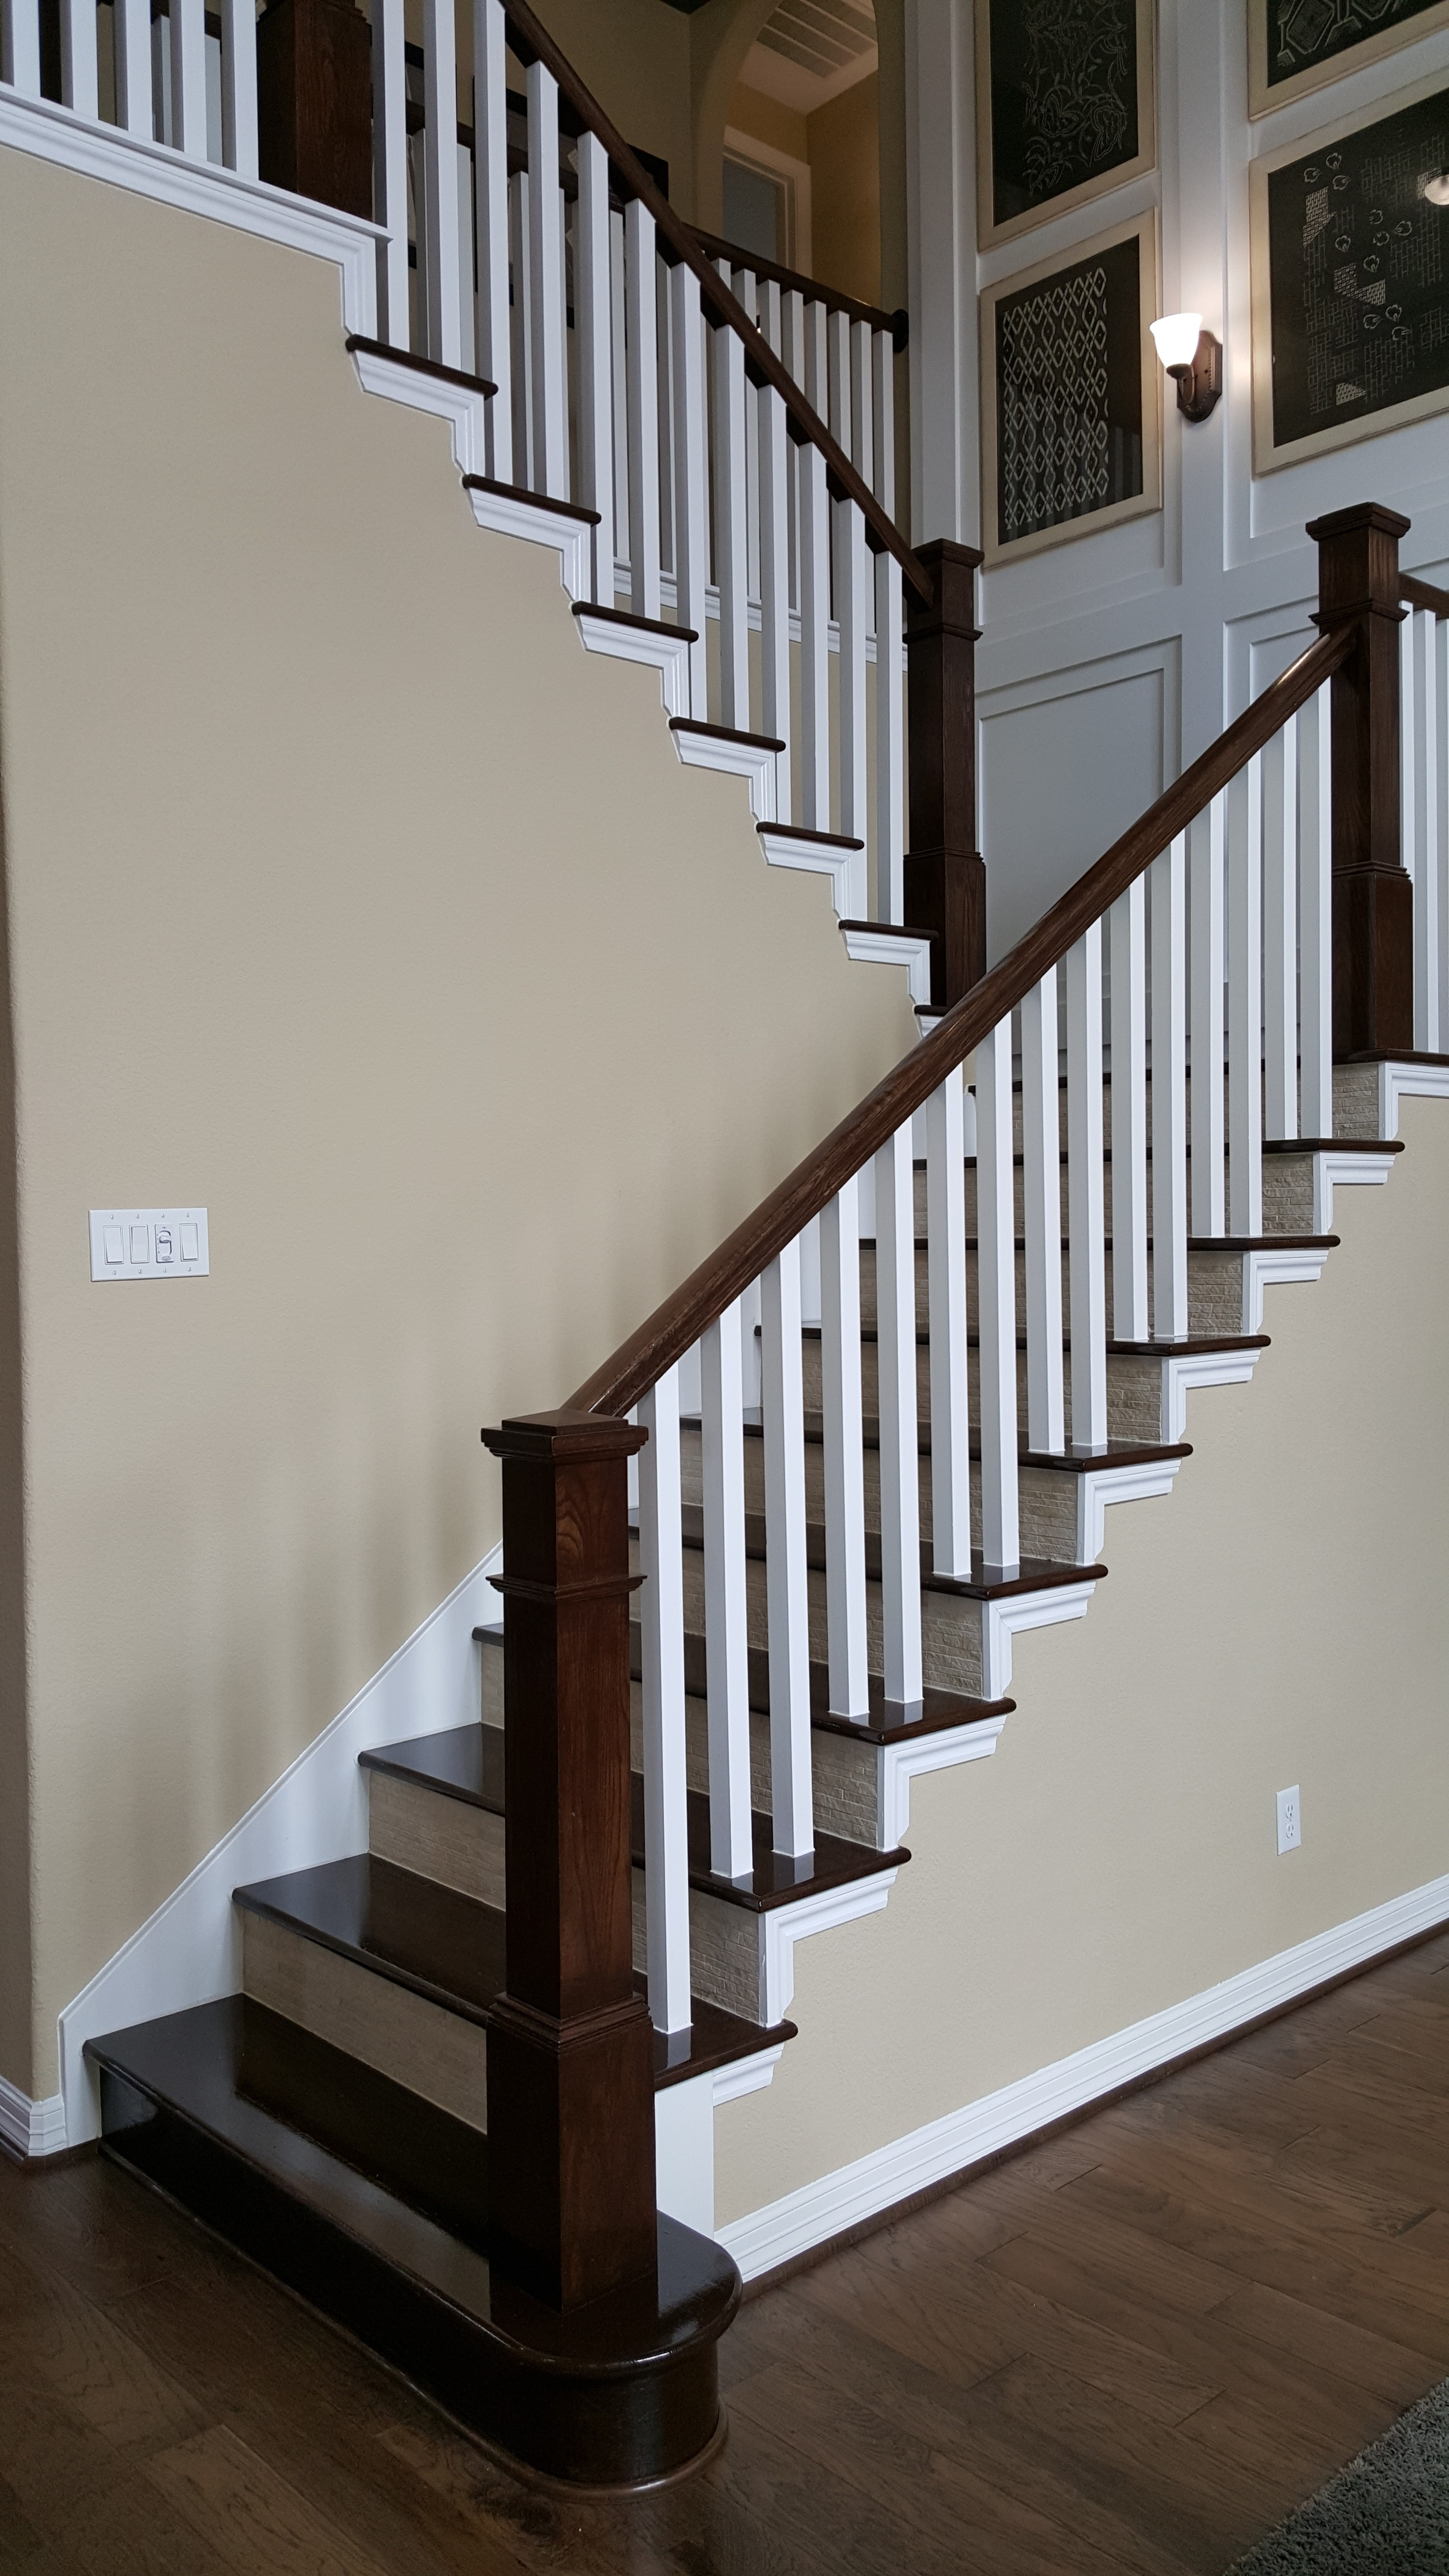 Merveilleux Houston, Tx Largest Stair Company | Ironwood Connection | Ironwood  Connection | Stair U0026 Railing Company